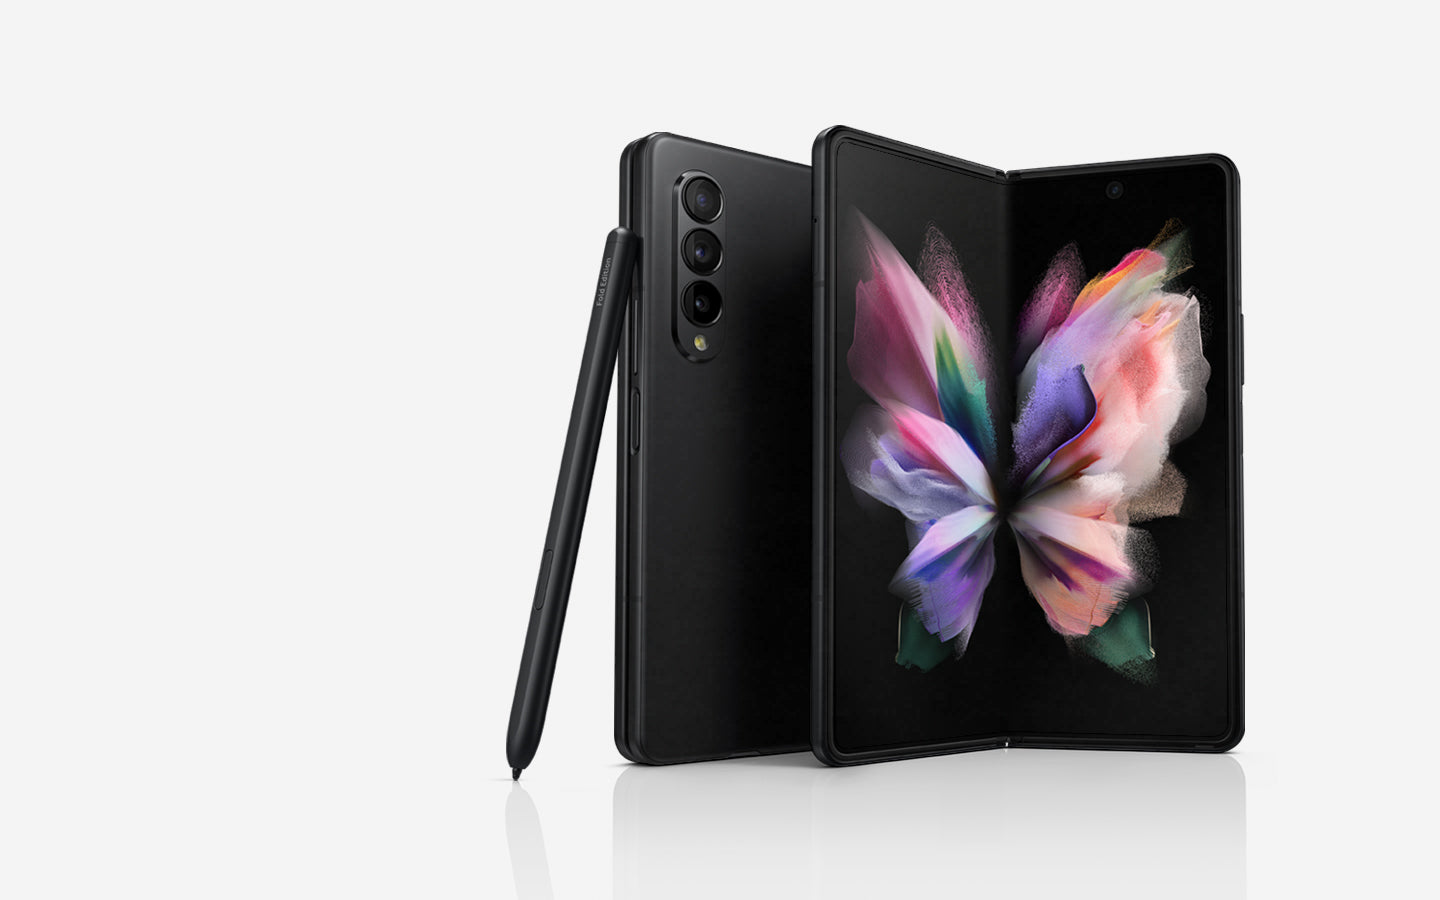 Two Galaxy Z Fold3 5G phones, one seen folded from the Back Cover and one seen unfolded with a colorful wallpaper on the Main Screen. The S Pen Fold Edition leans against the folded phone.